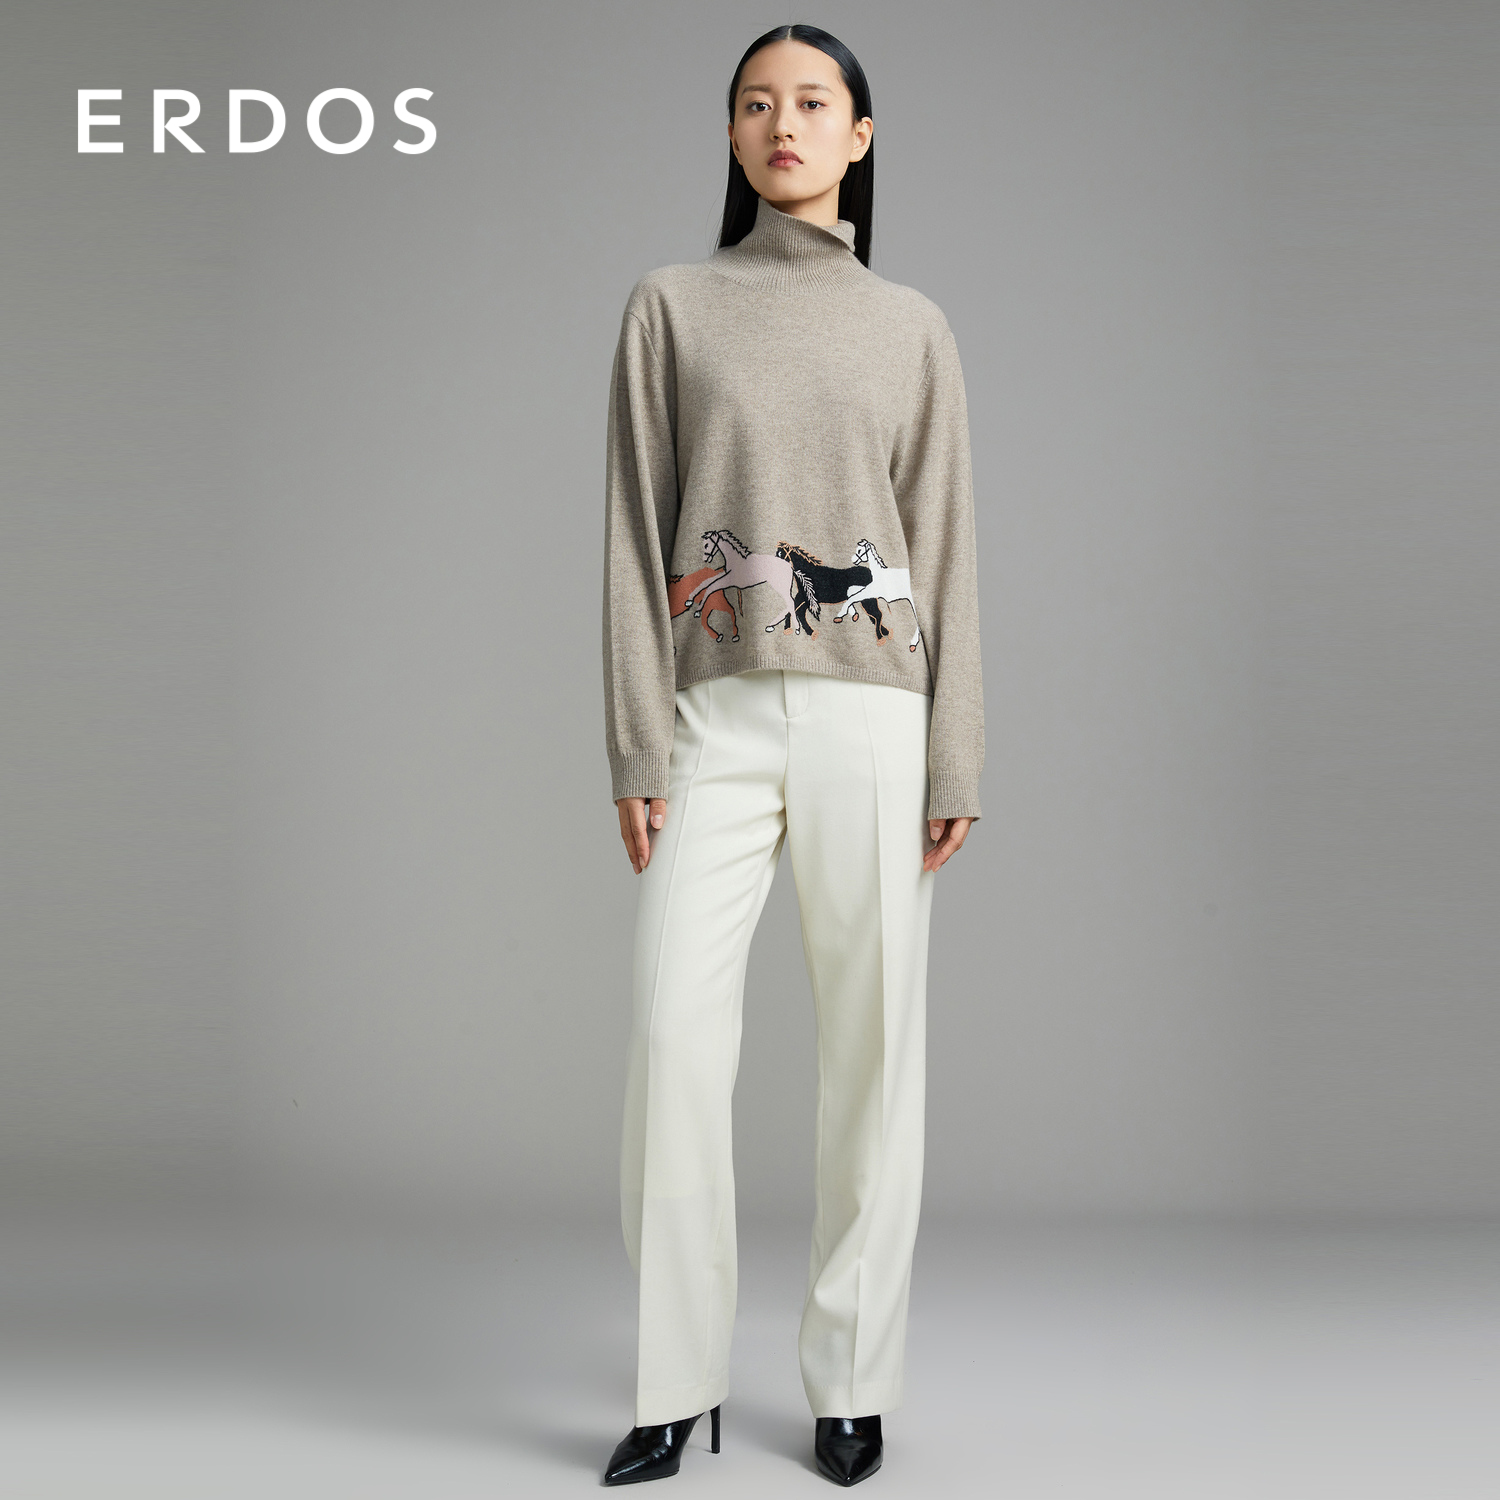 ERDOS Turtleneck Horse Decorative Jacquard Women's Cashmere knitwear